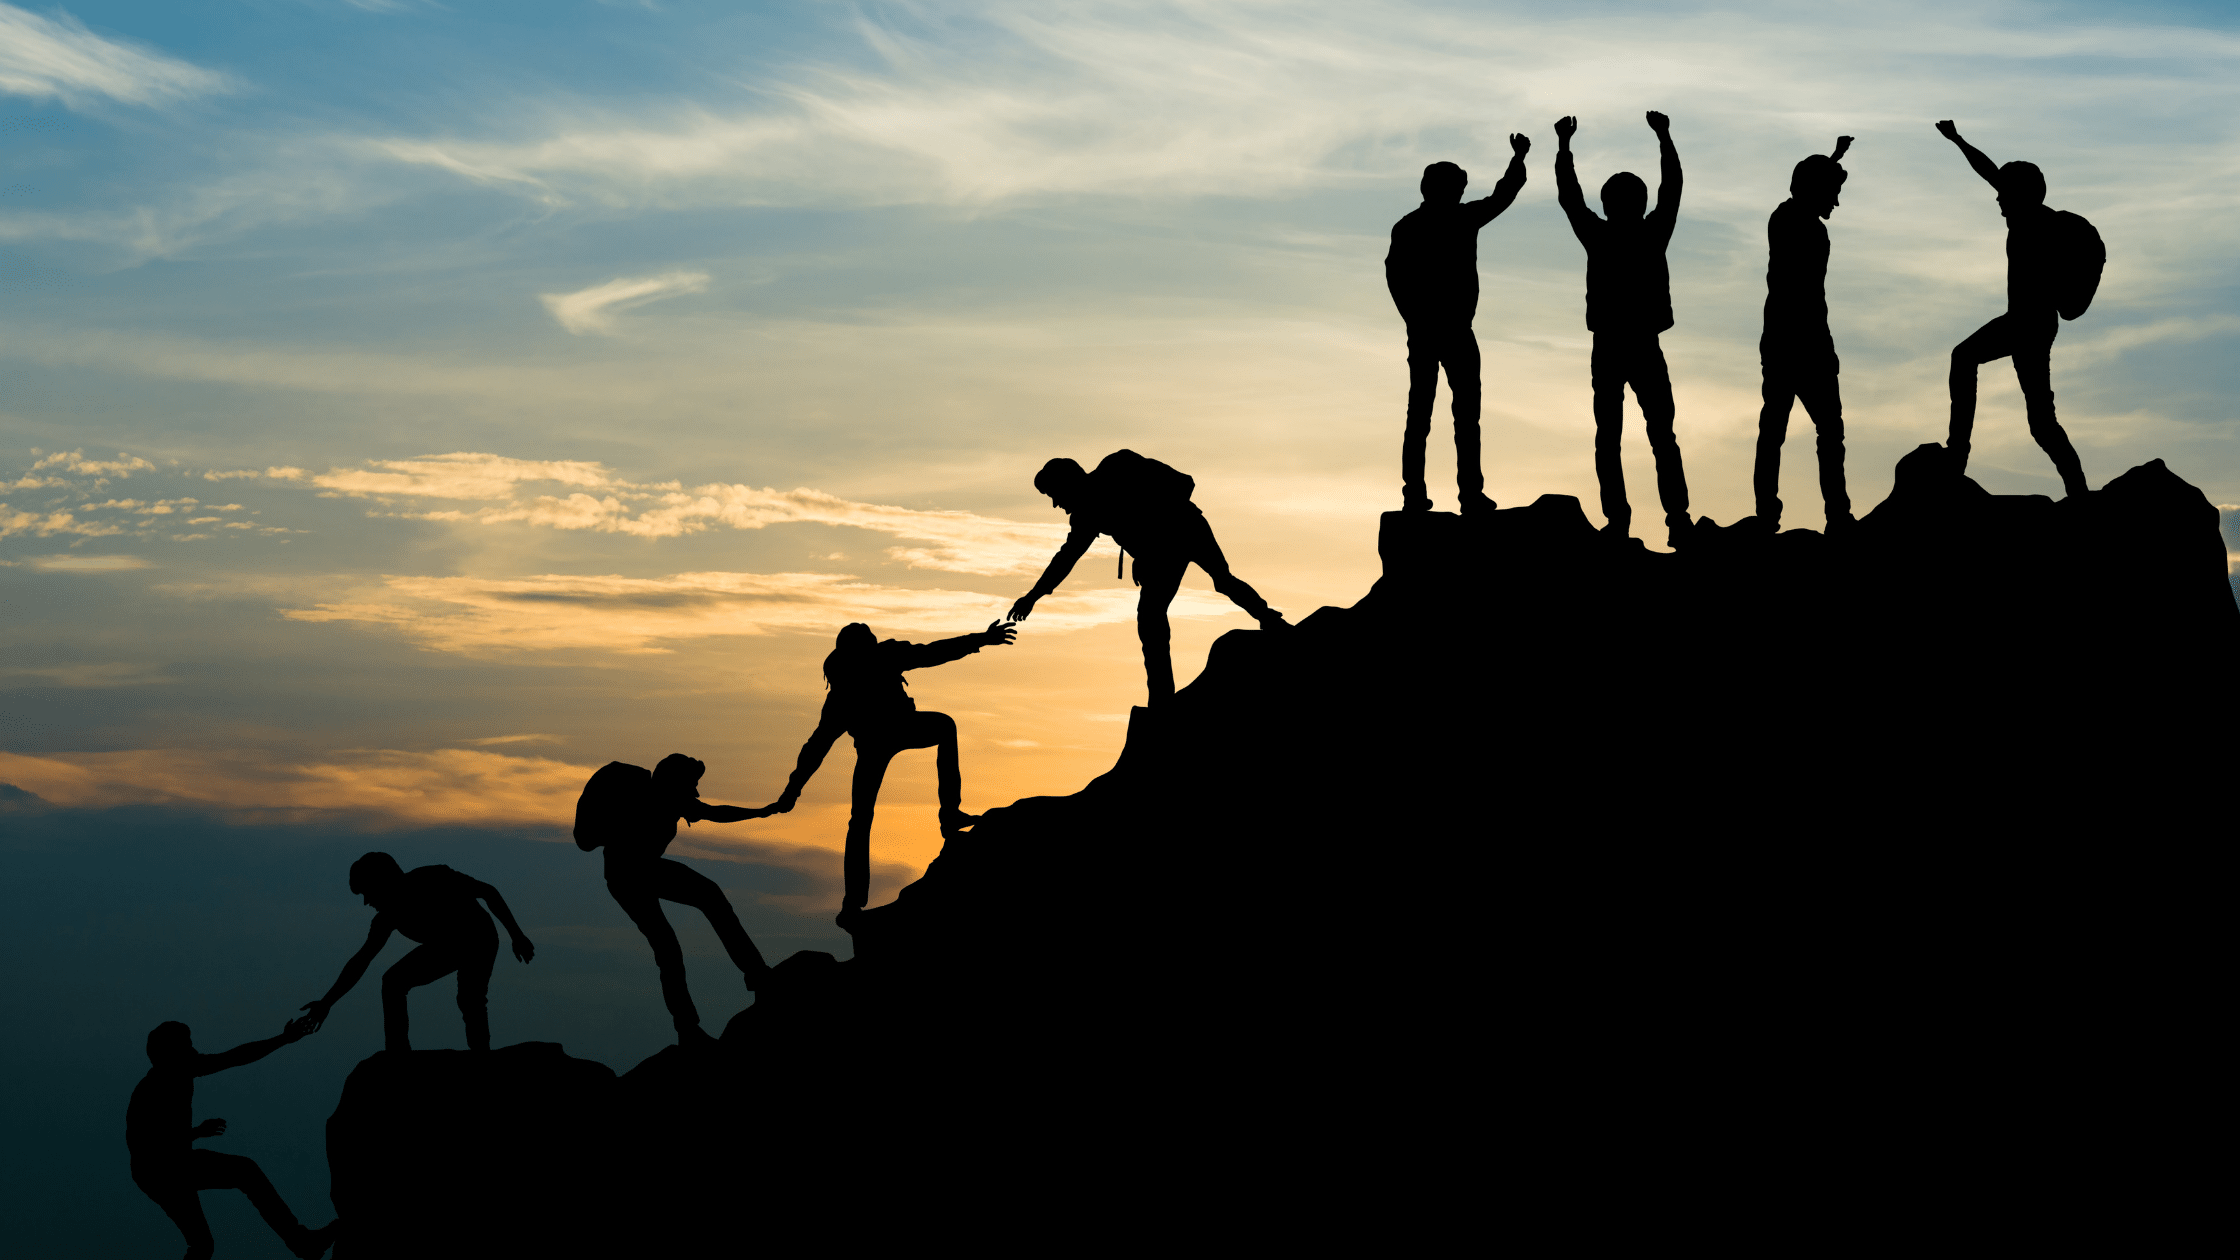 photo of people helping each other up a mountain at sunrise